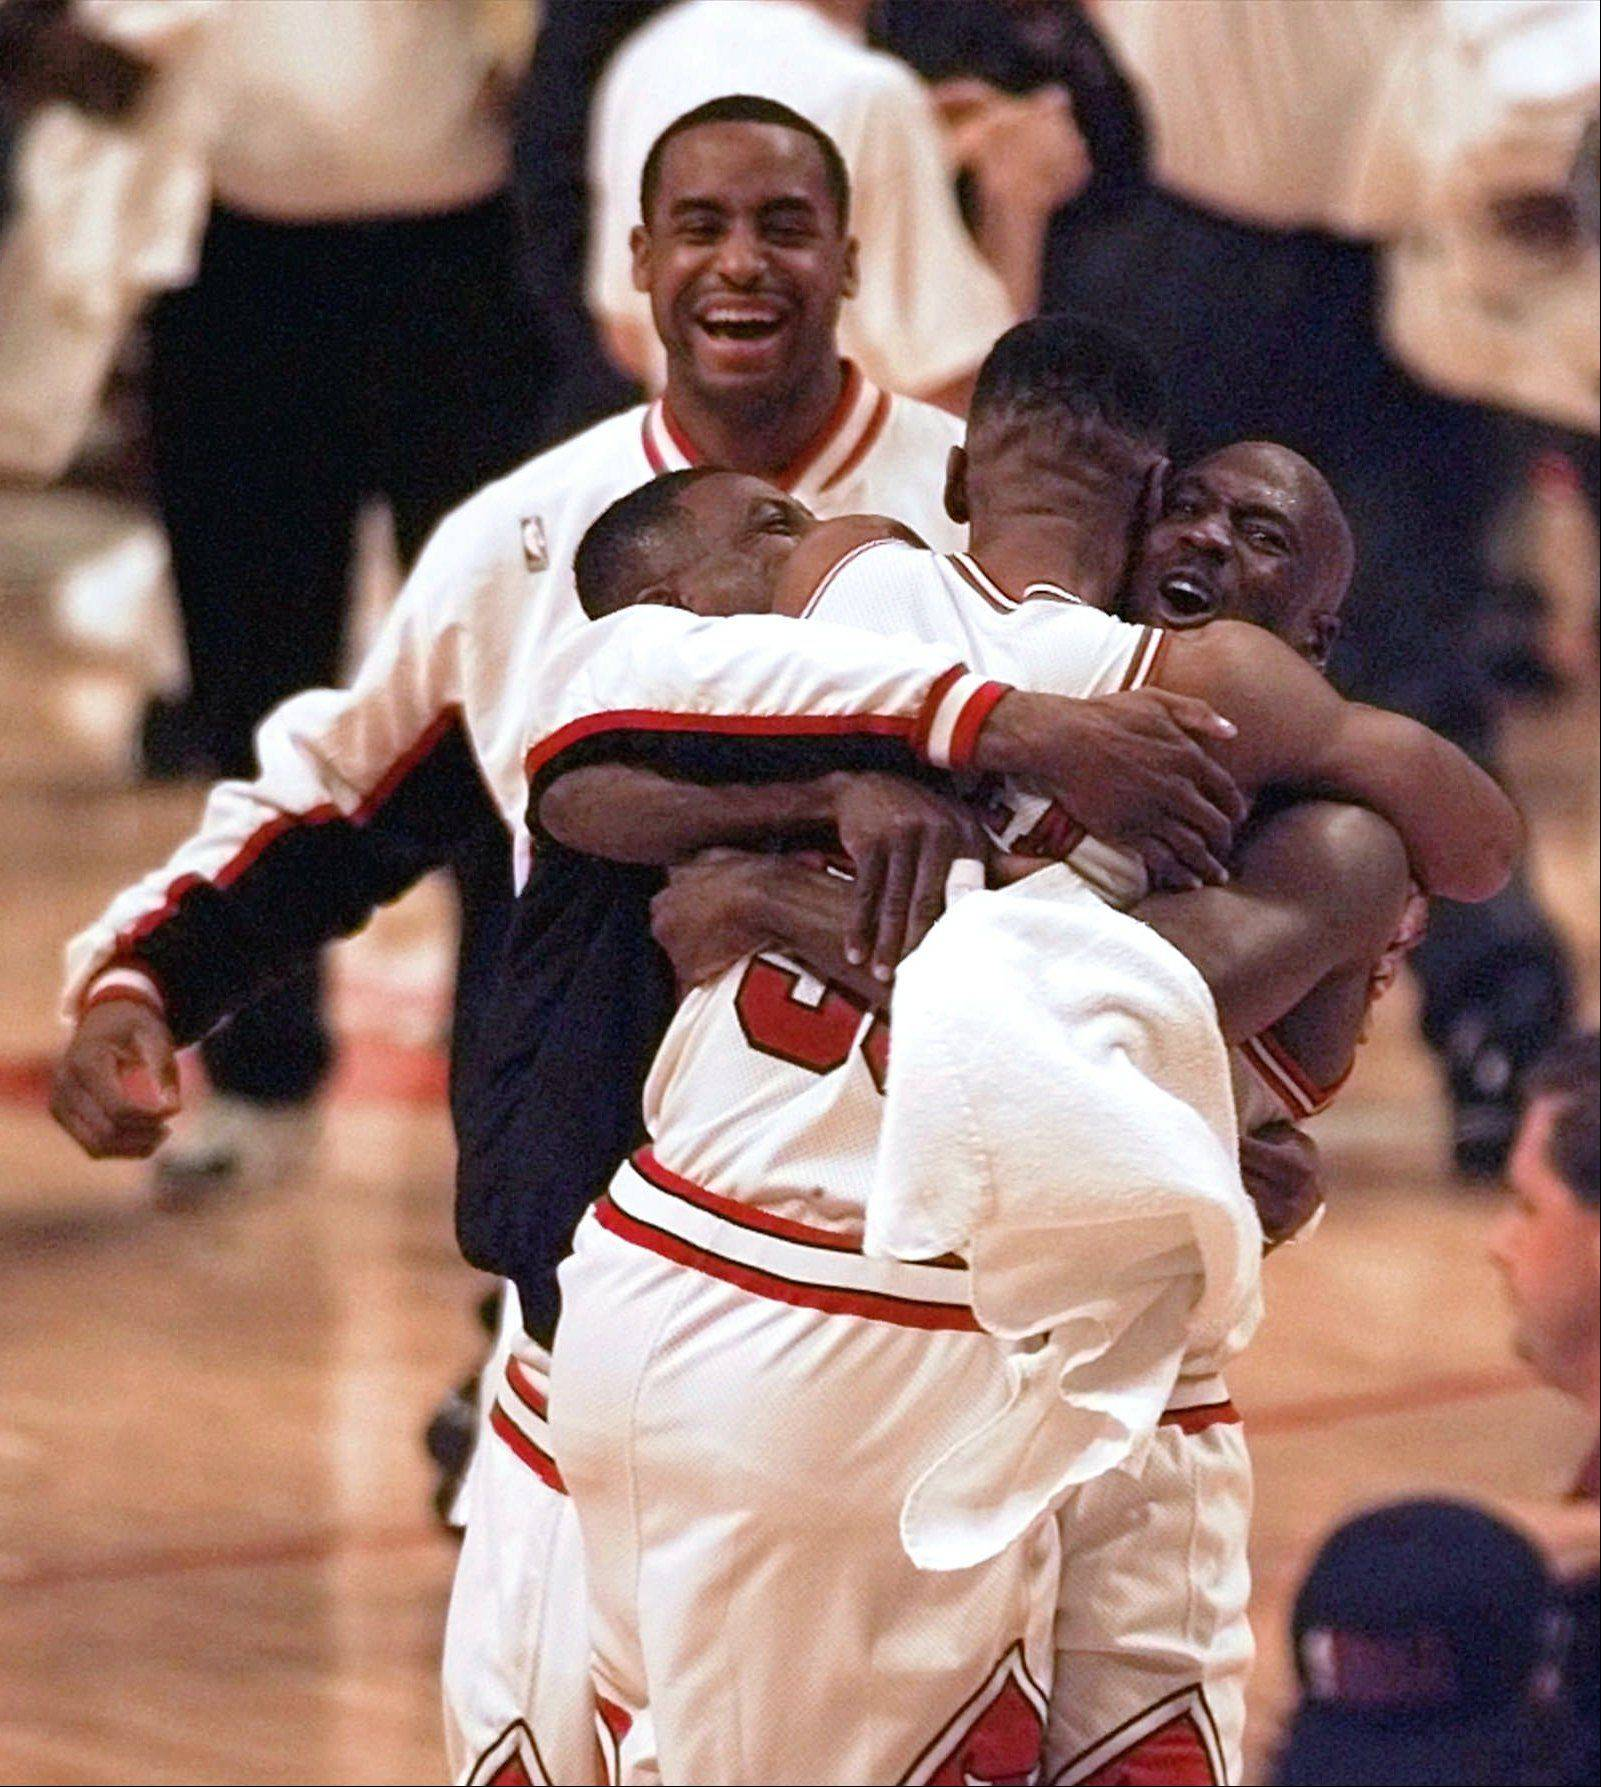 Michael Jordan hugs teammates Scottie Pippen, front, and Randy Brown, left, as Jason Caffey, rear, joins in after the Bulls beat the Utah Jazz 90-86 in Game 6 to win the NBA championship Friday, June 13, 1997, in Chicago.